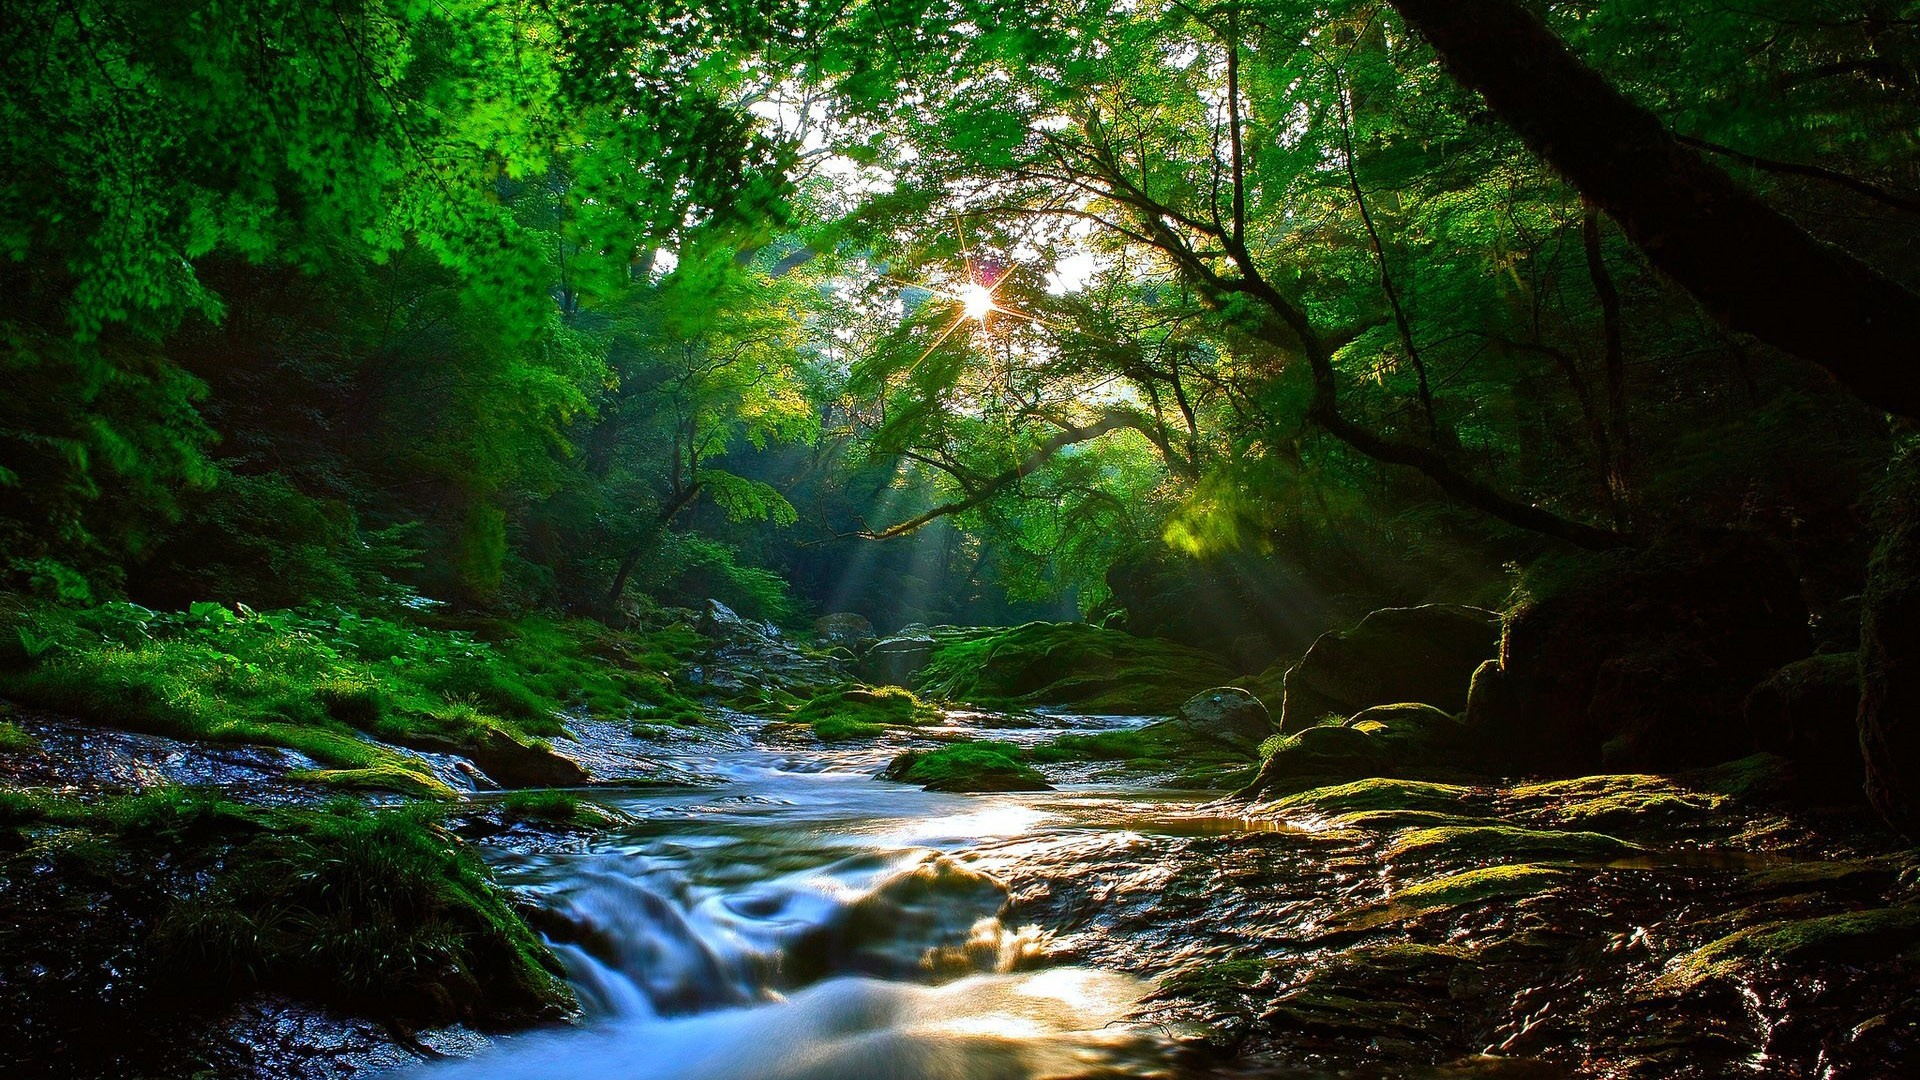 Forest Stream Beautiful Scenery Wallpaper Big Picture 8wallpapers